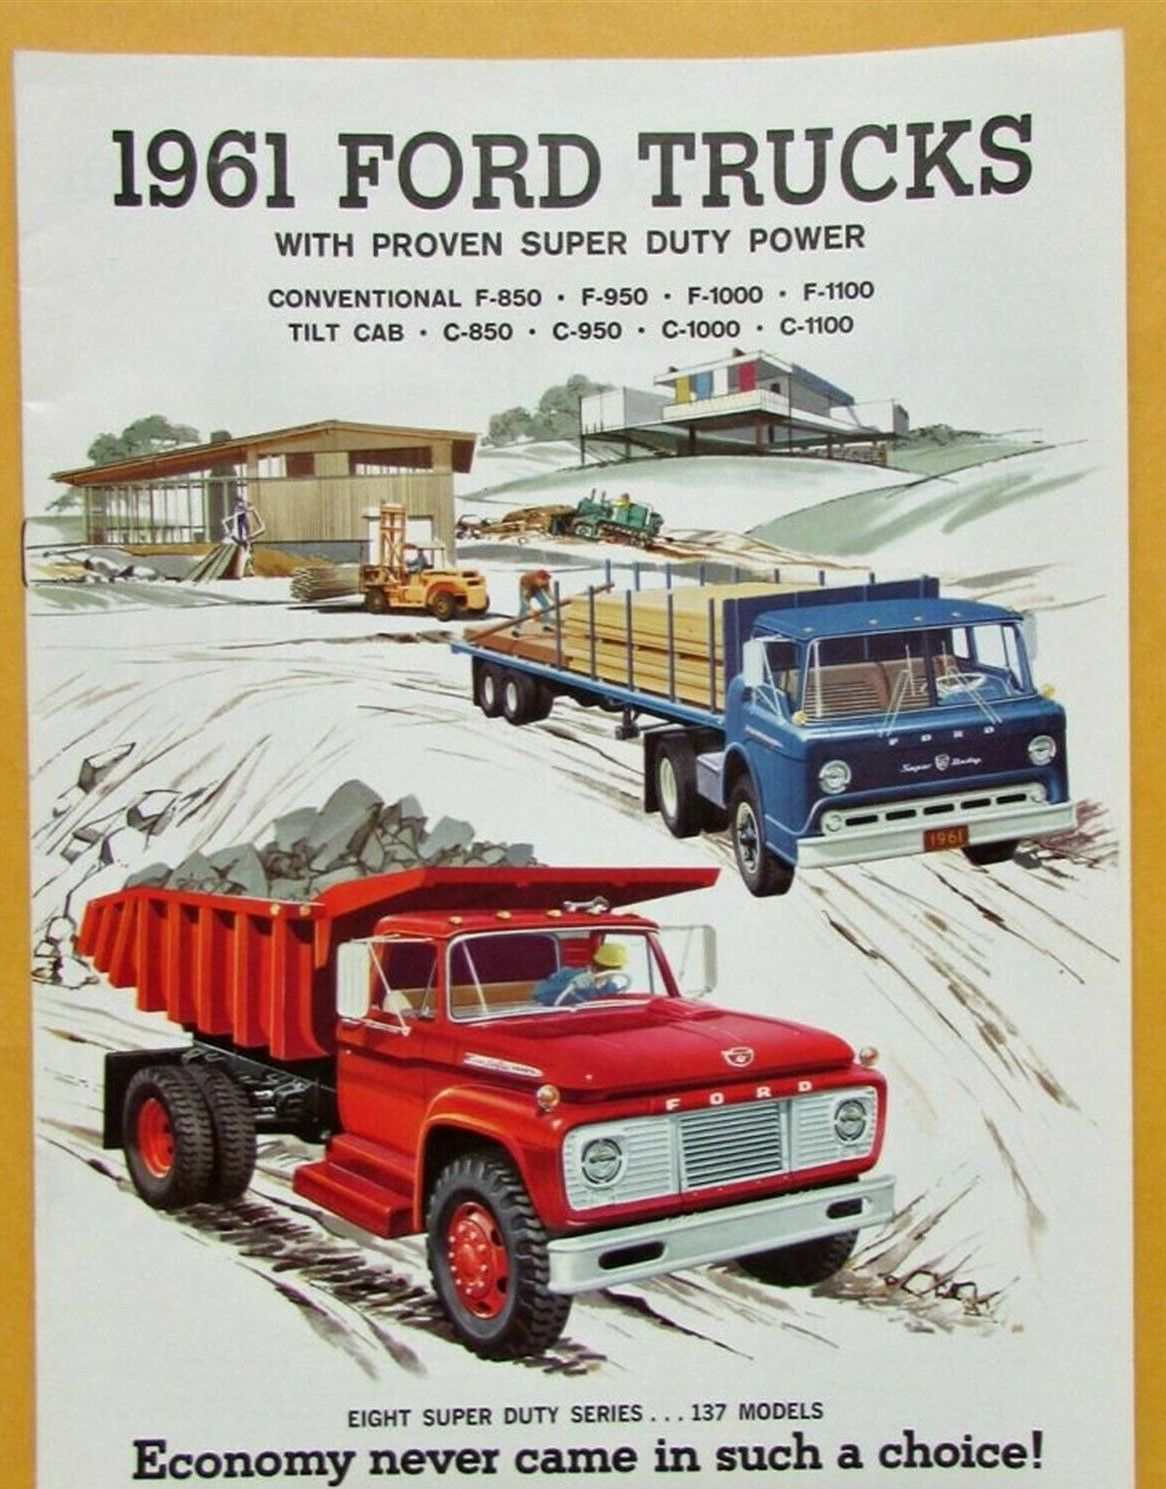 Pin By Moparscharger On Ford Trucks In 2020 Ford Trucks Ford Truck Ford